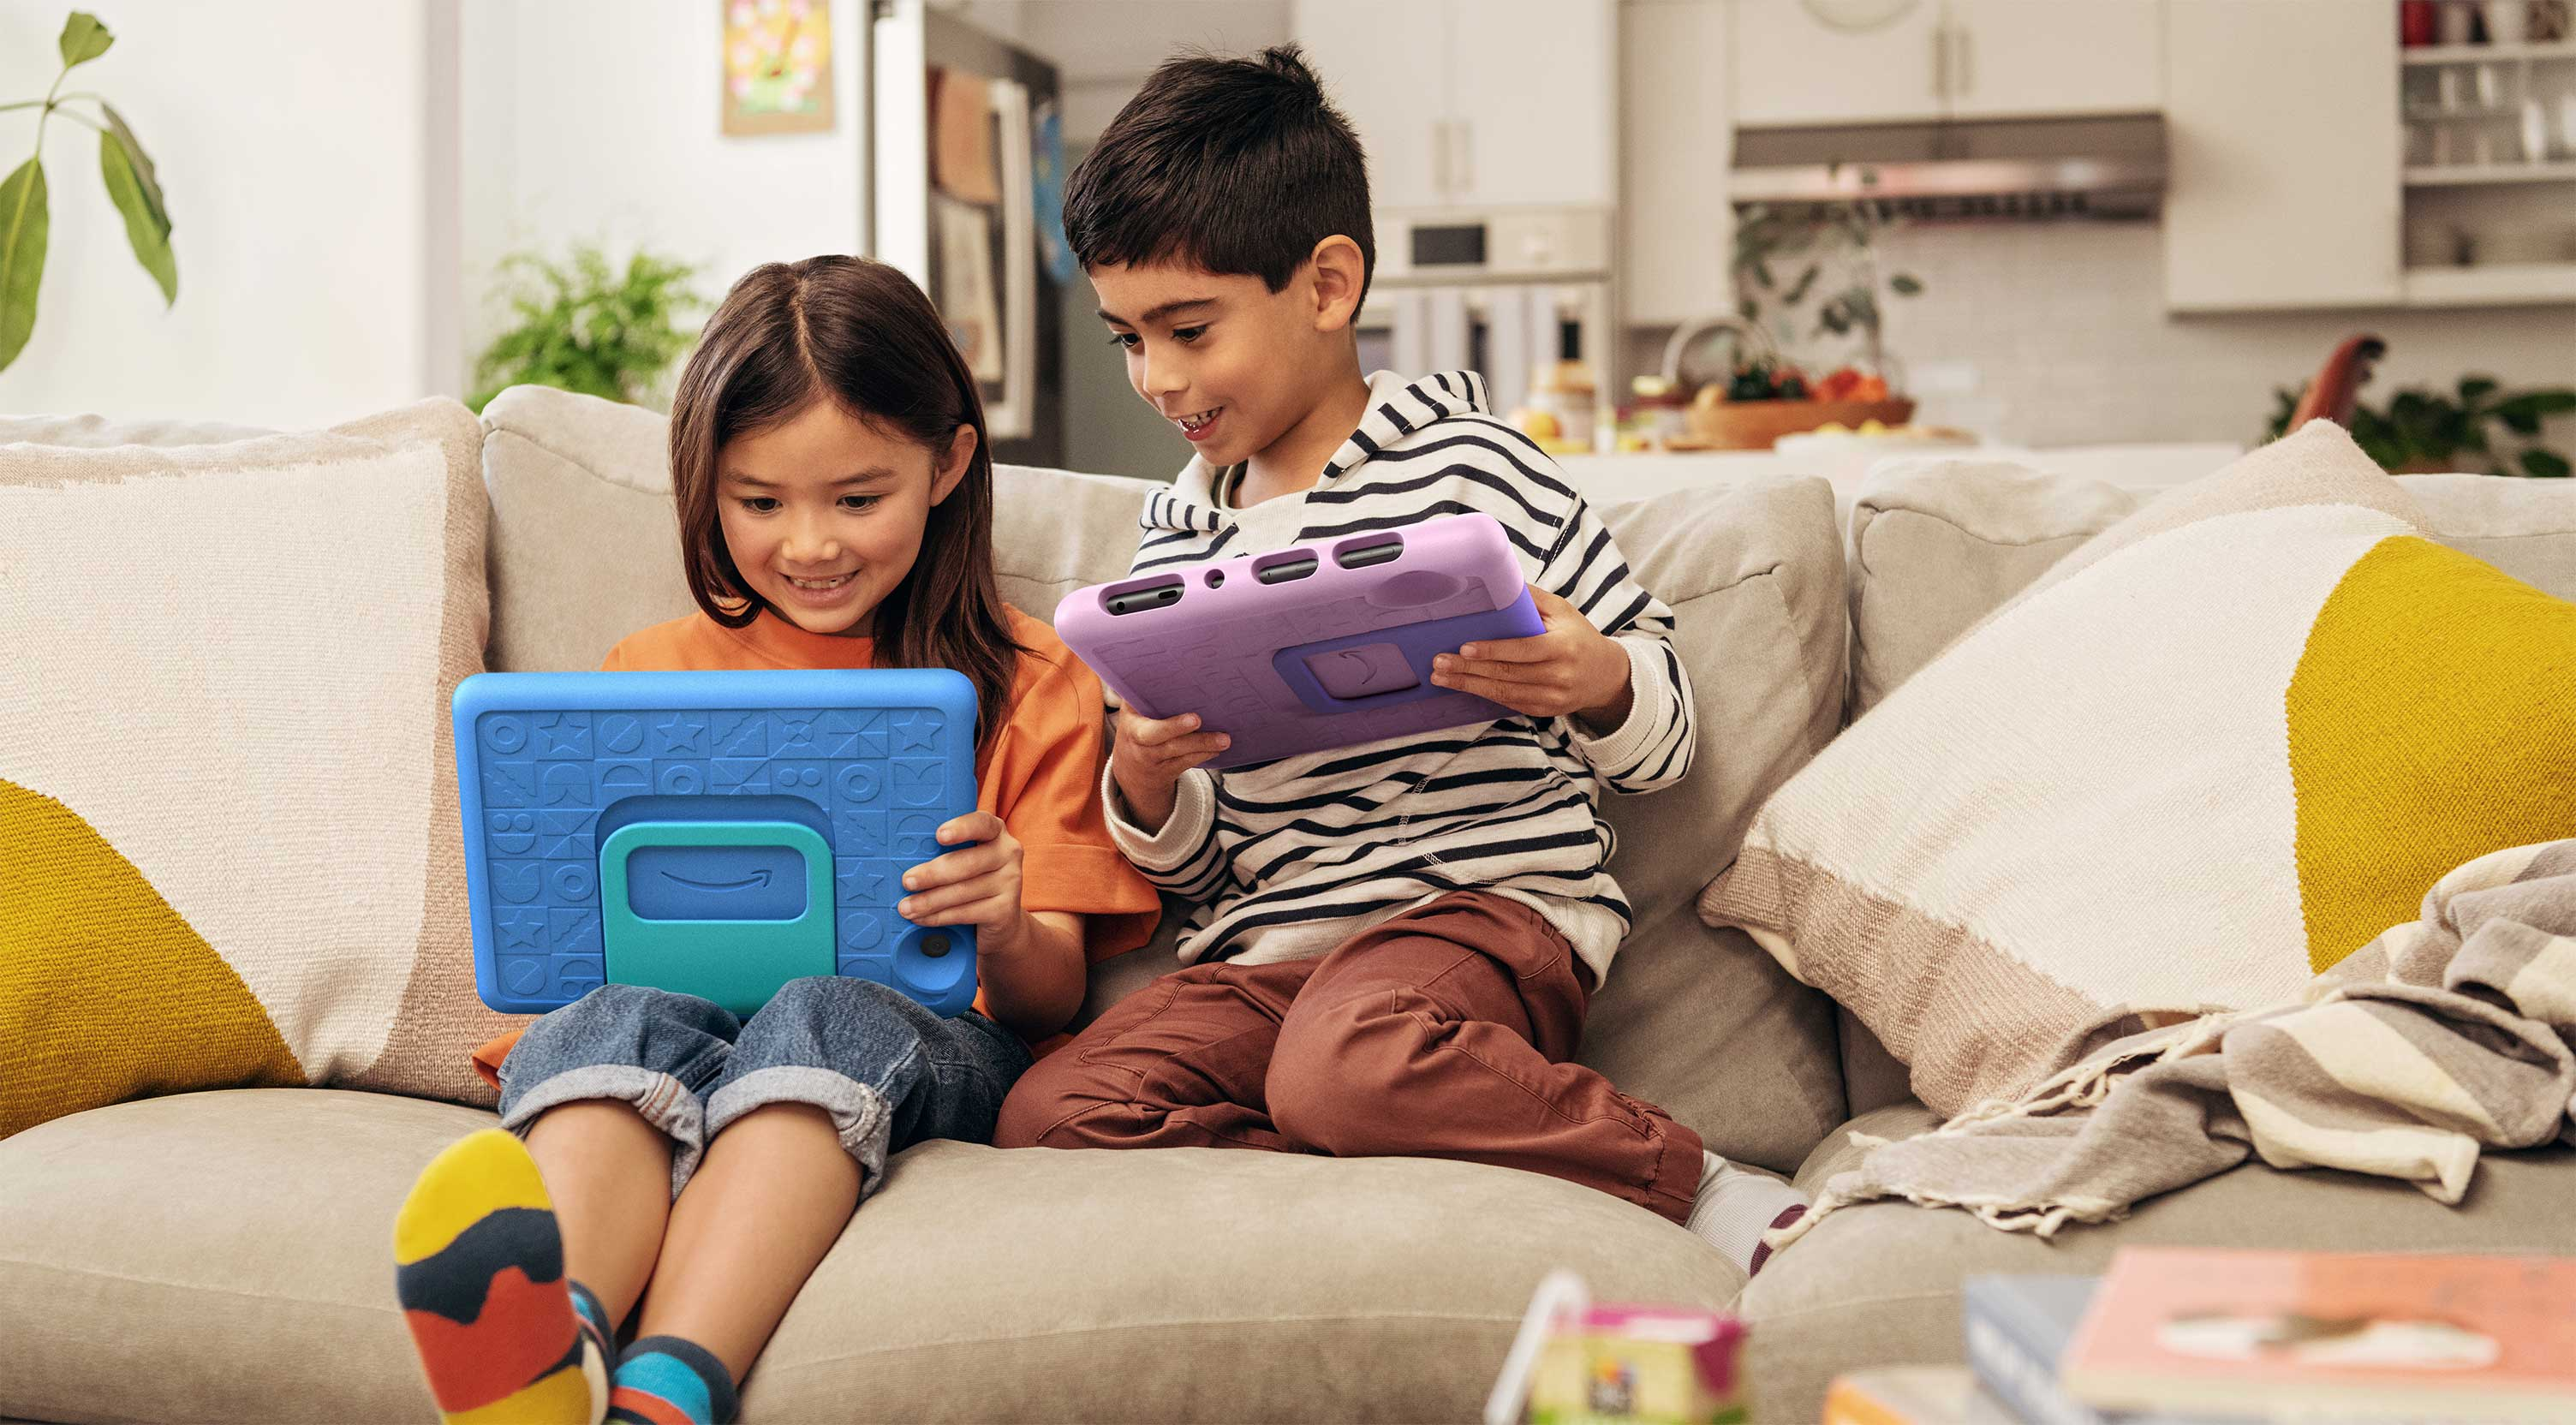 Two smiling children seated on a couch, each using their Fire HD 10 Kids tablet.